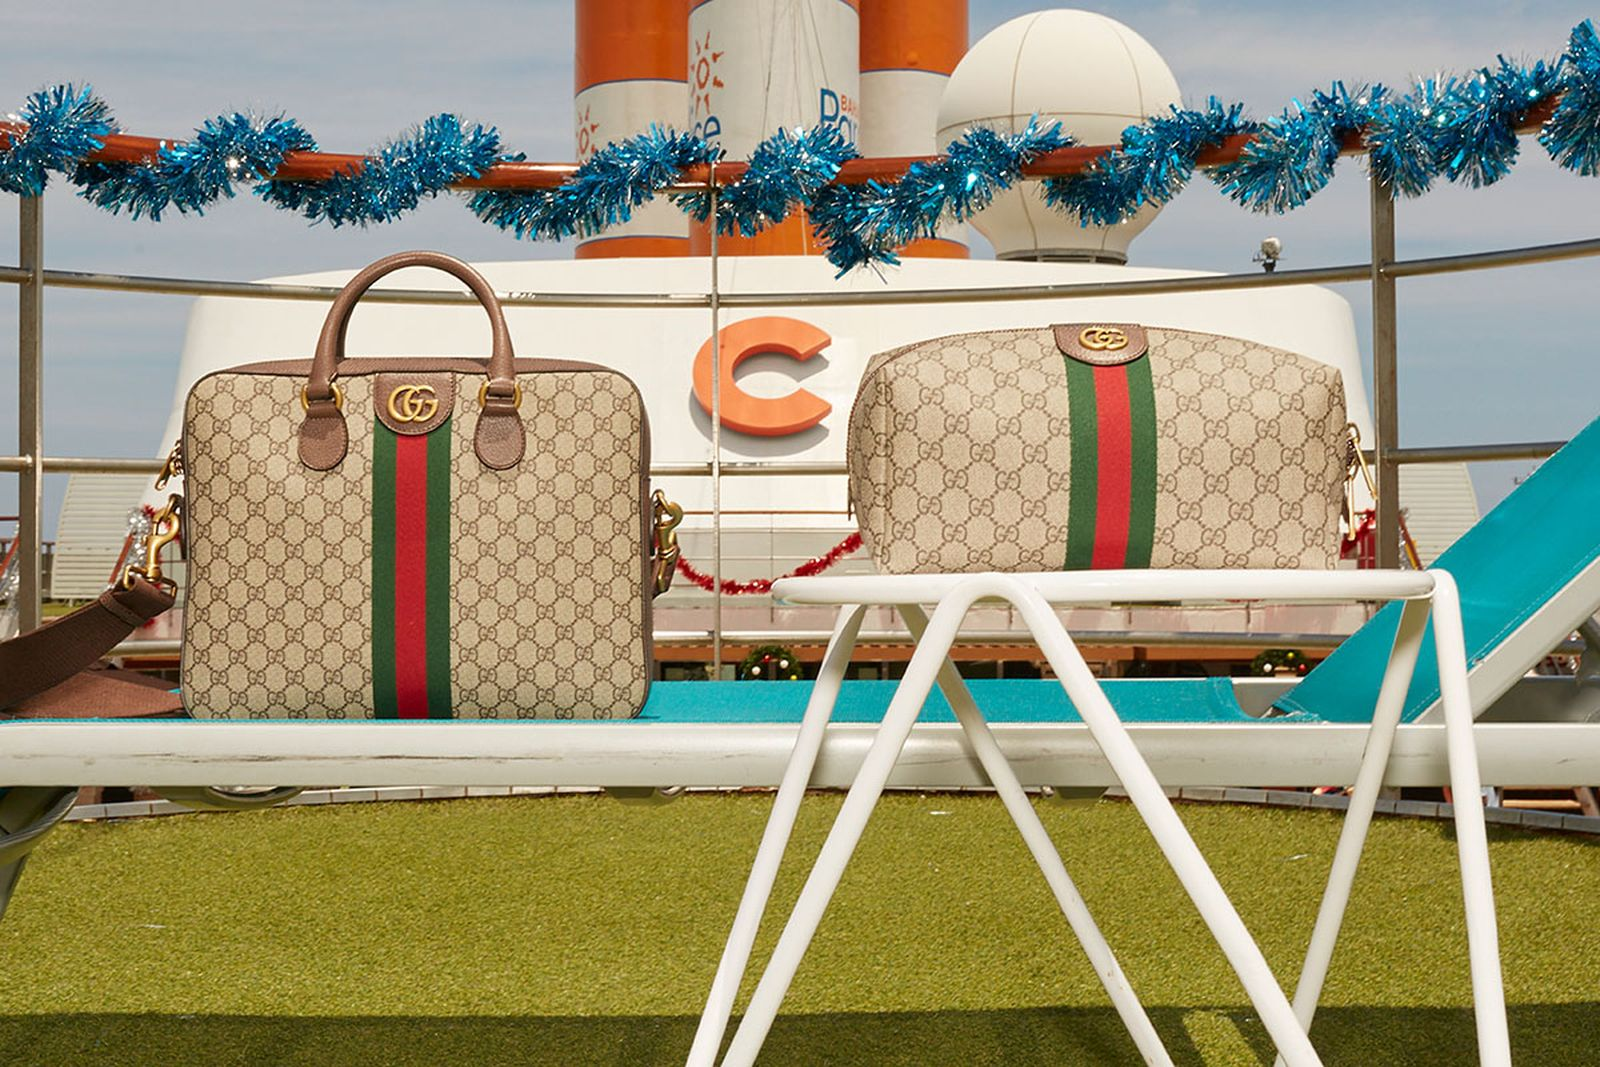 gucci-gift-giving-campaign-2019-66